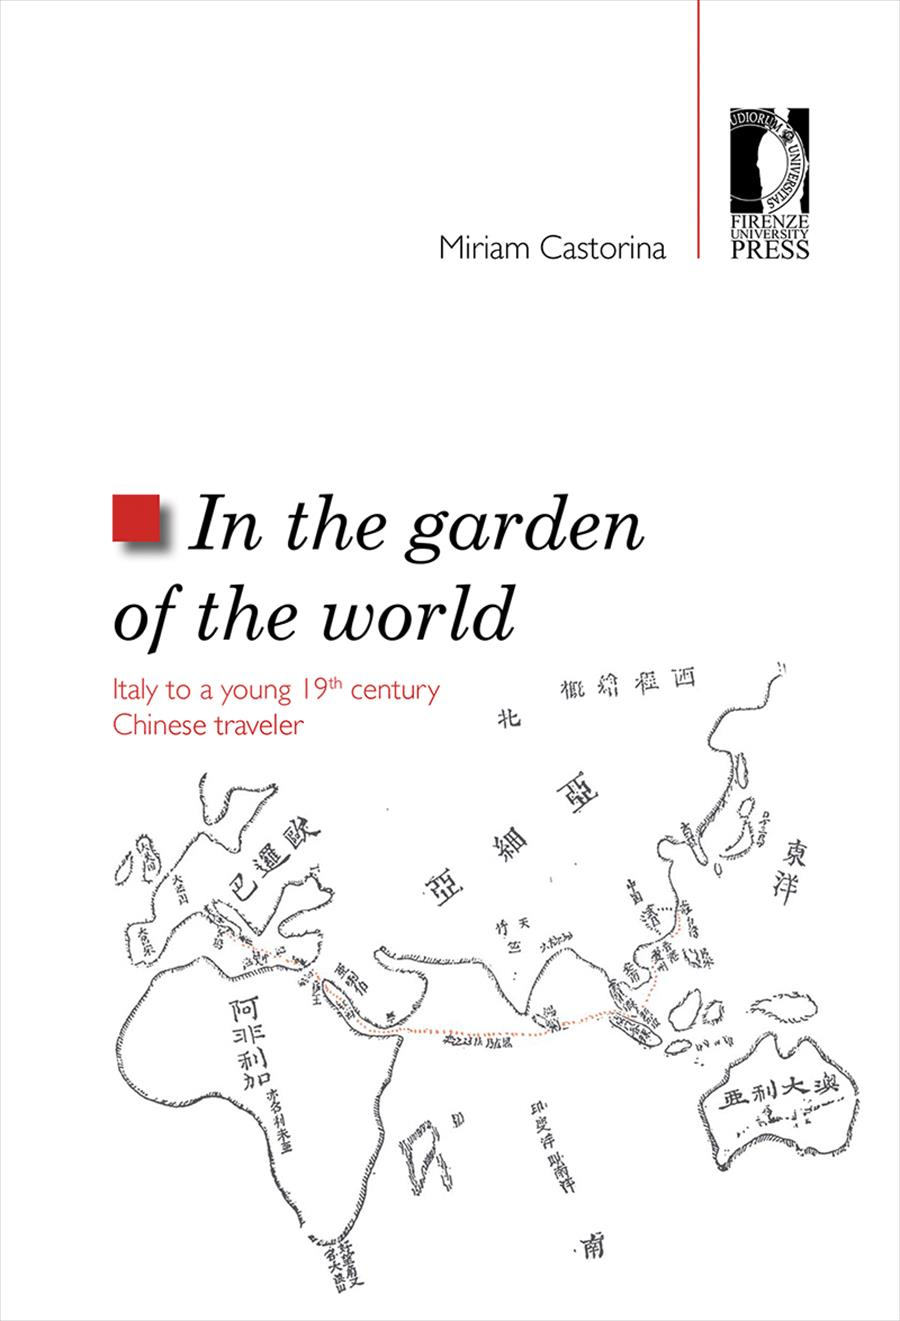 In the garden of the world. Italy to a young 19th century Chinese traveler